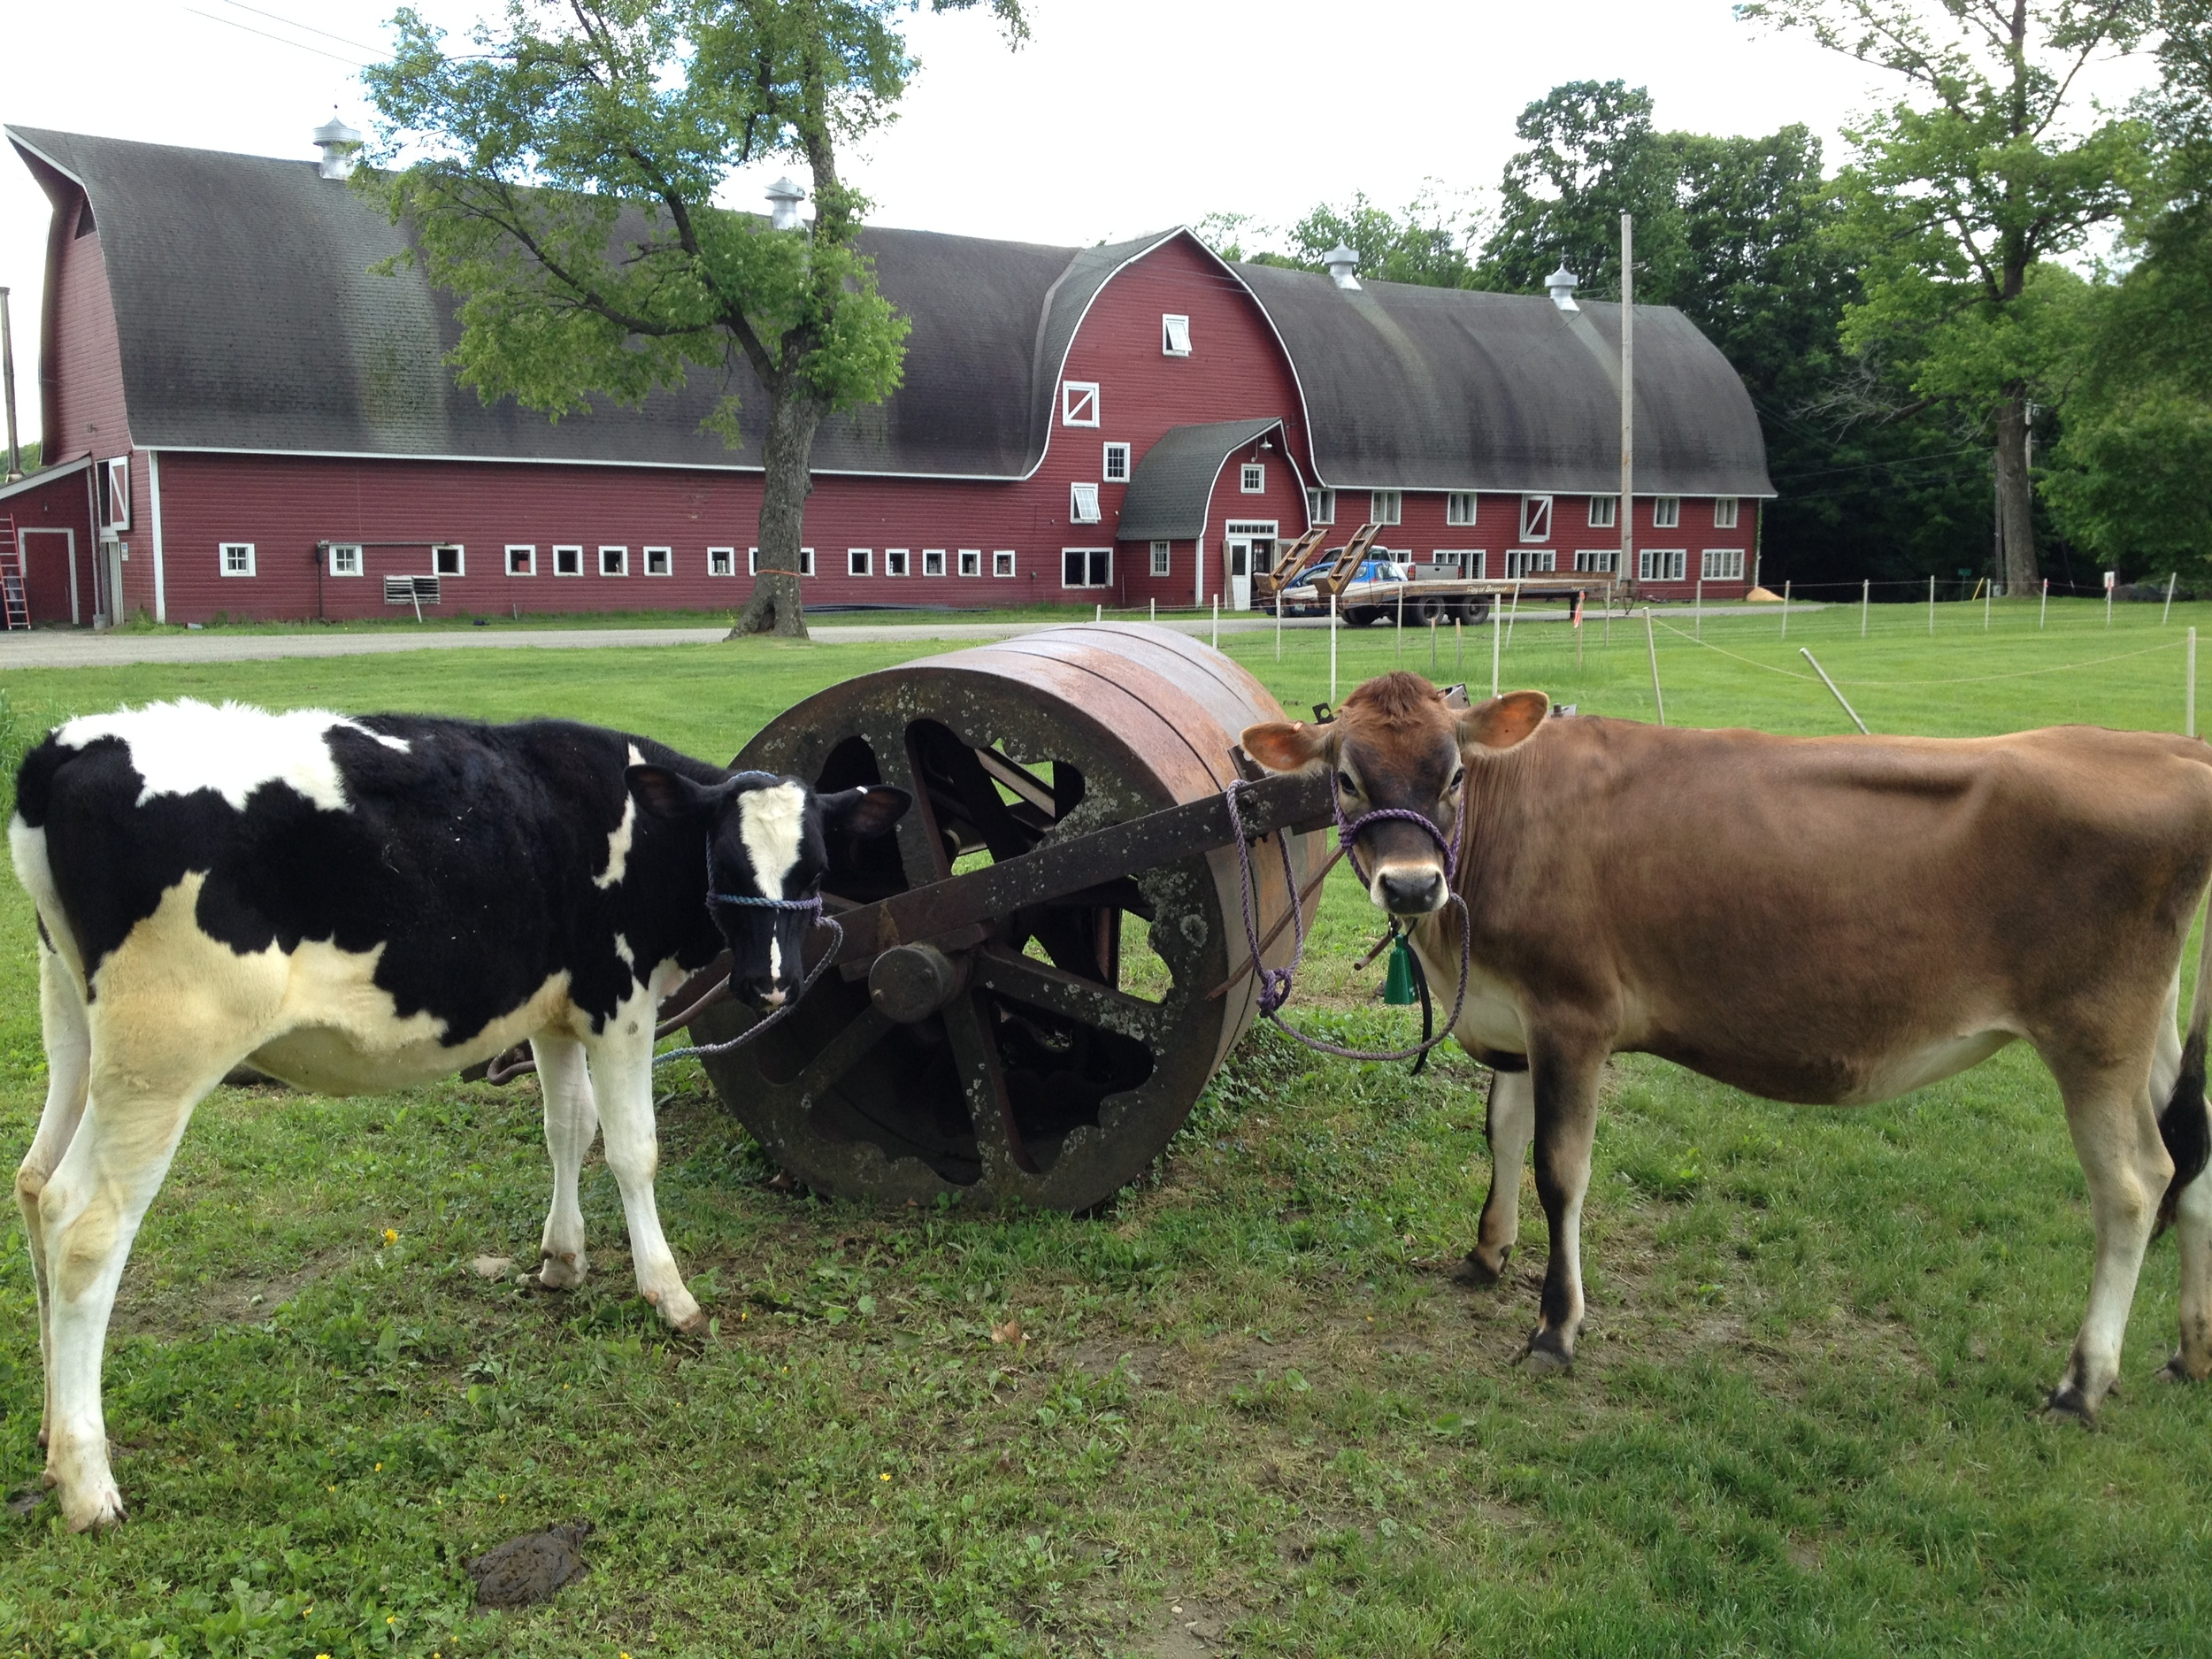 heifers readying to stroll